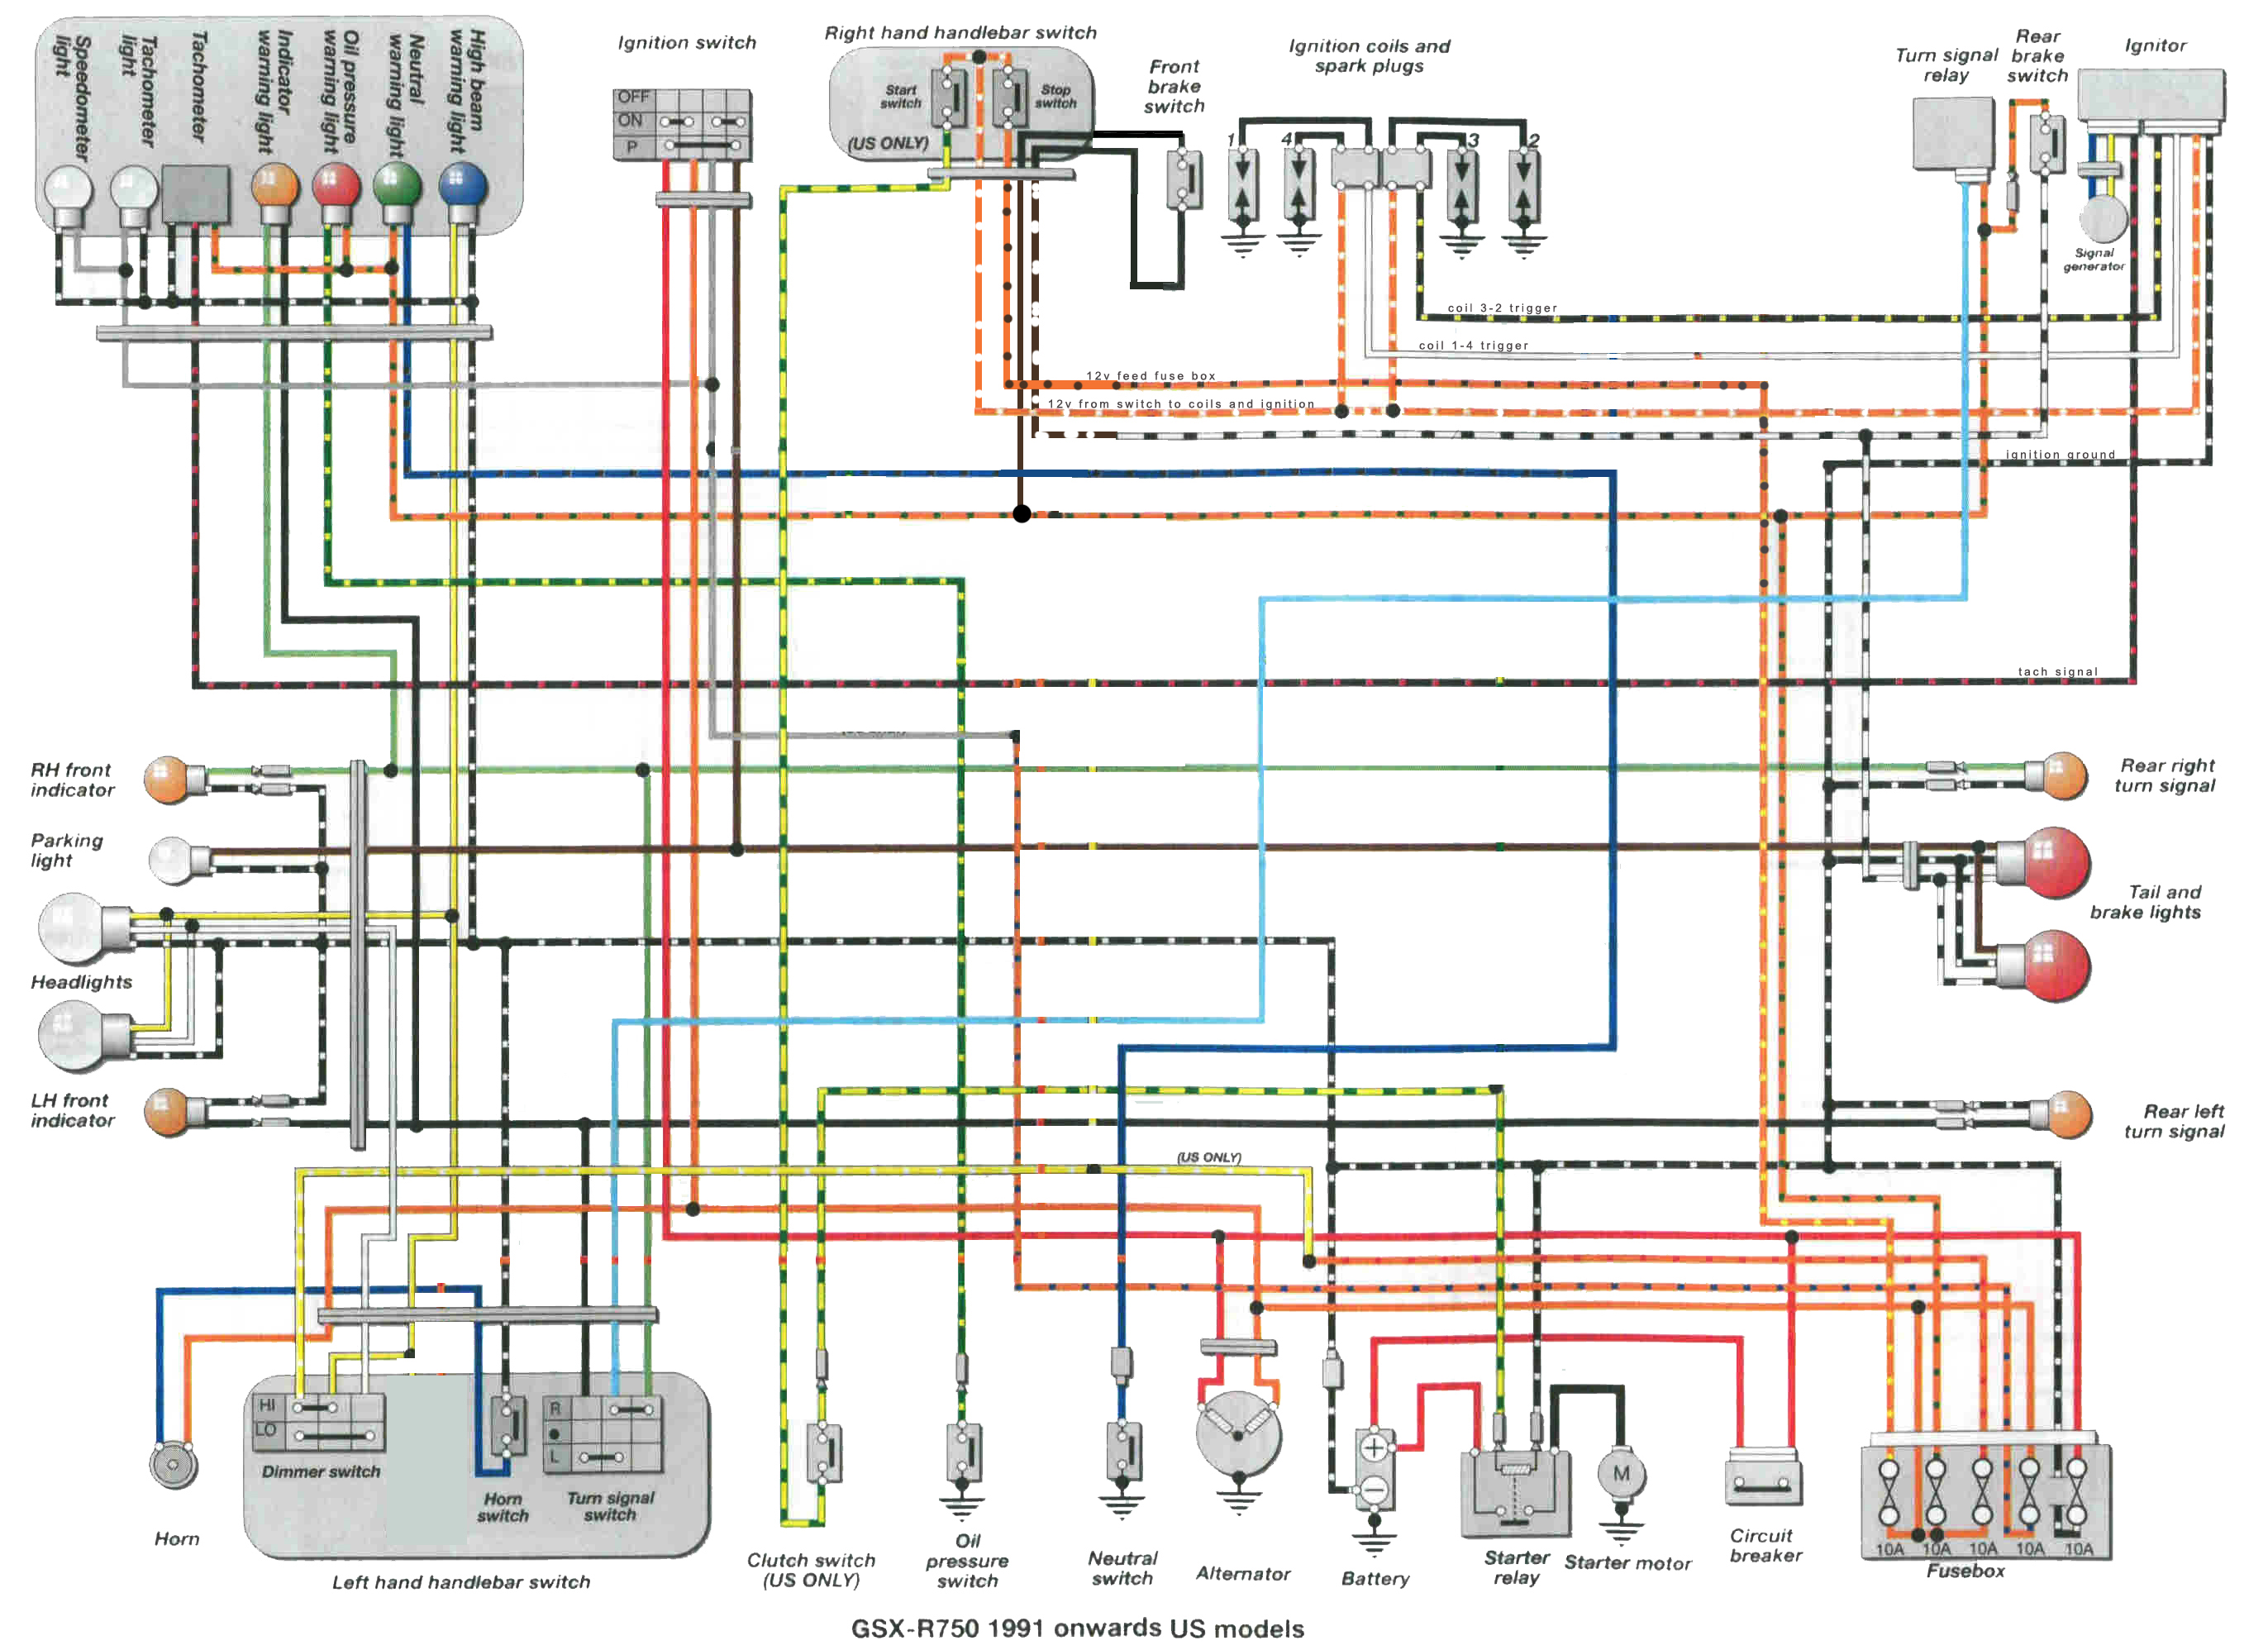 john deere ignition switch wiring diagram pglXAkT wiring diagrams \u2022 j squared co sc18g wiring diagram at couponss.co